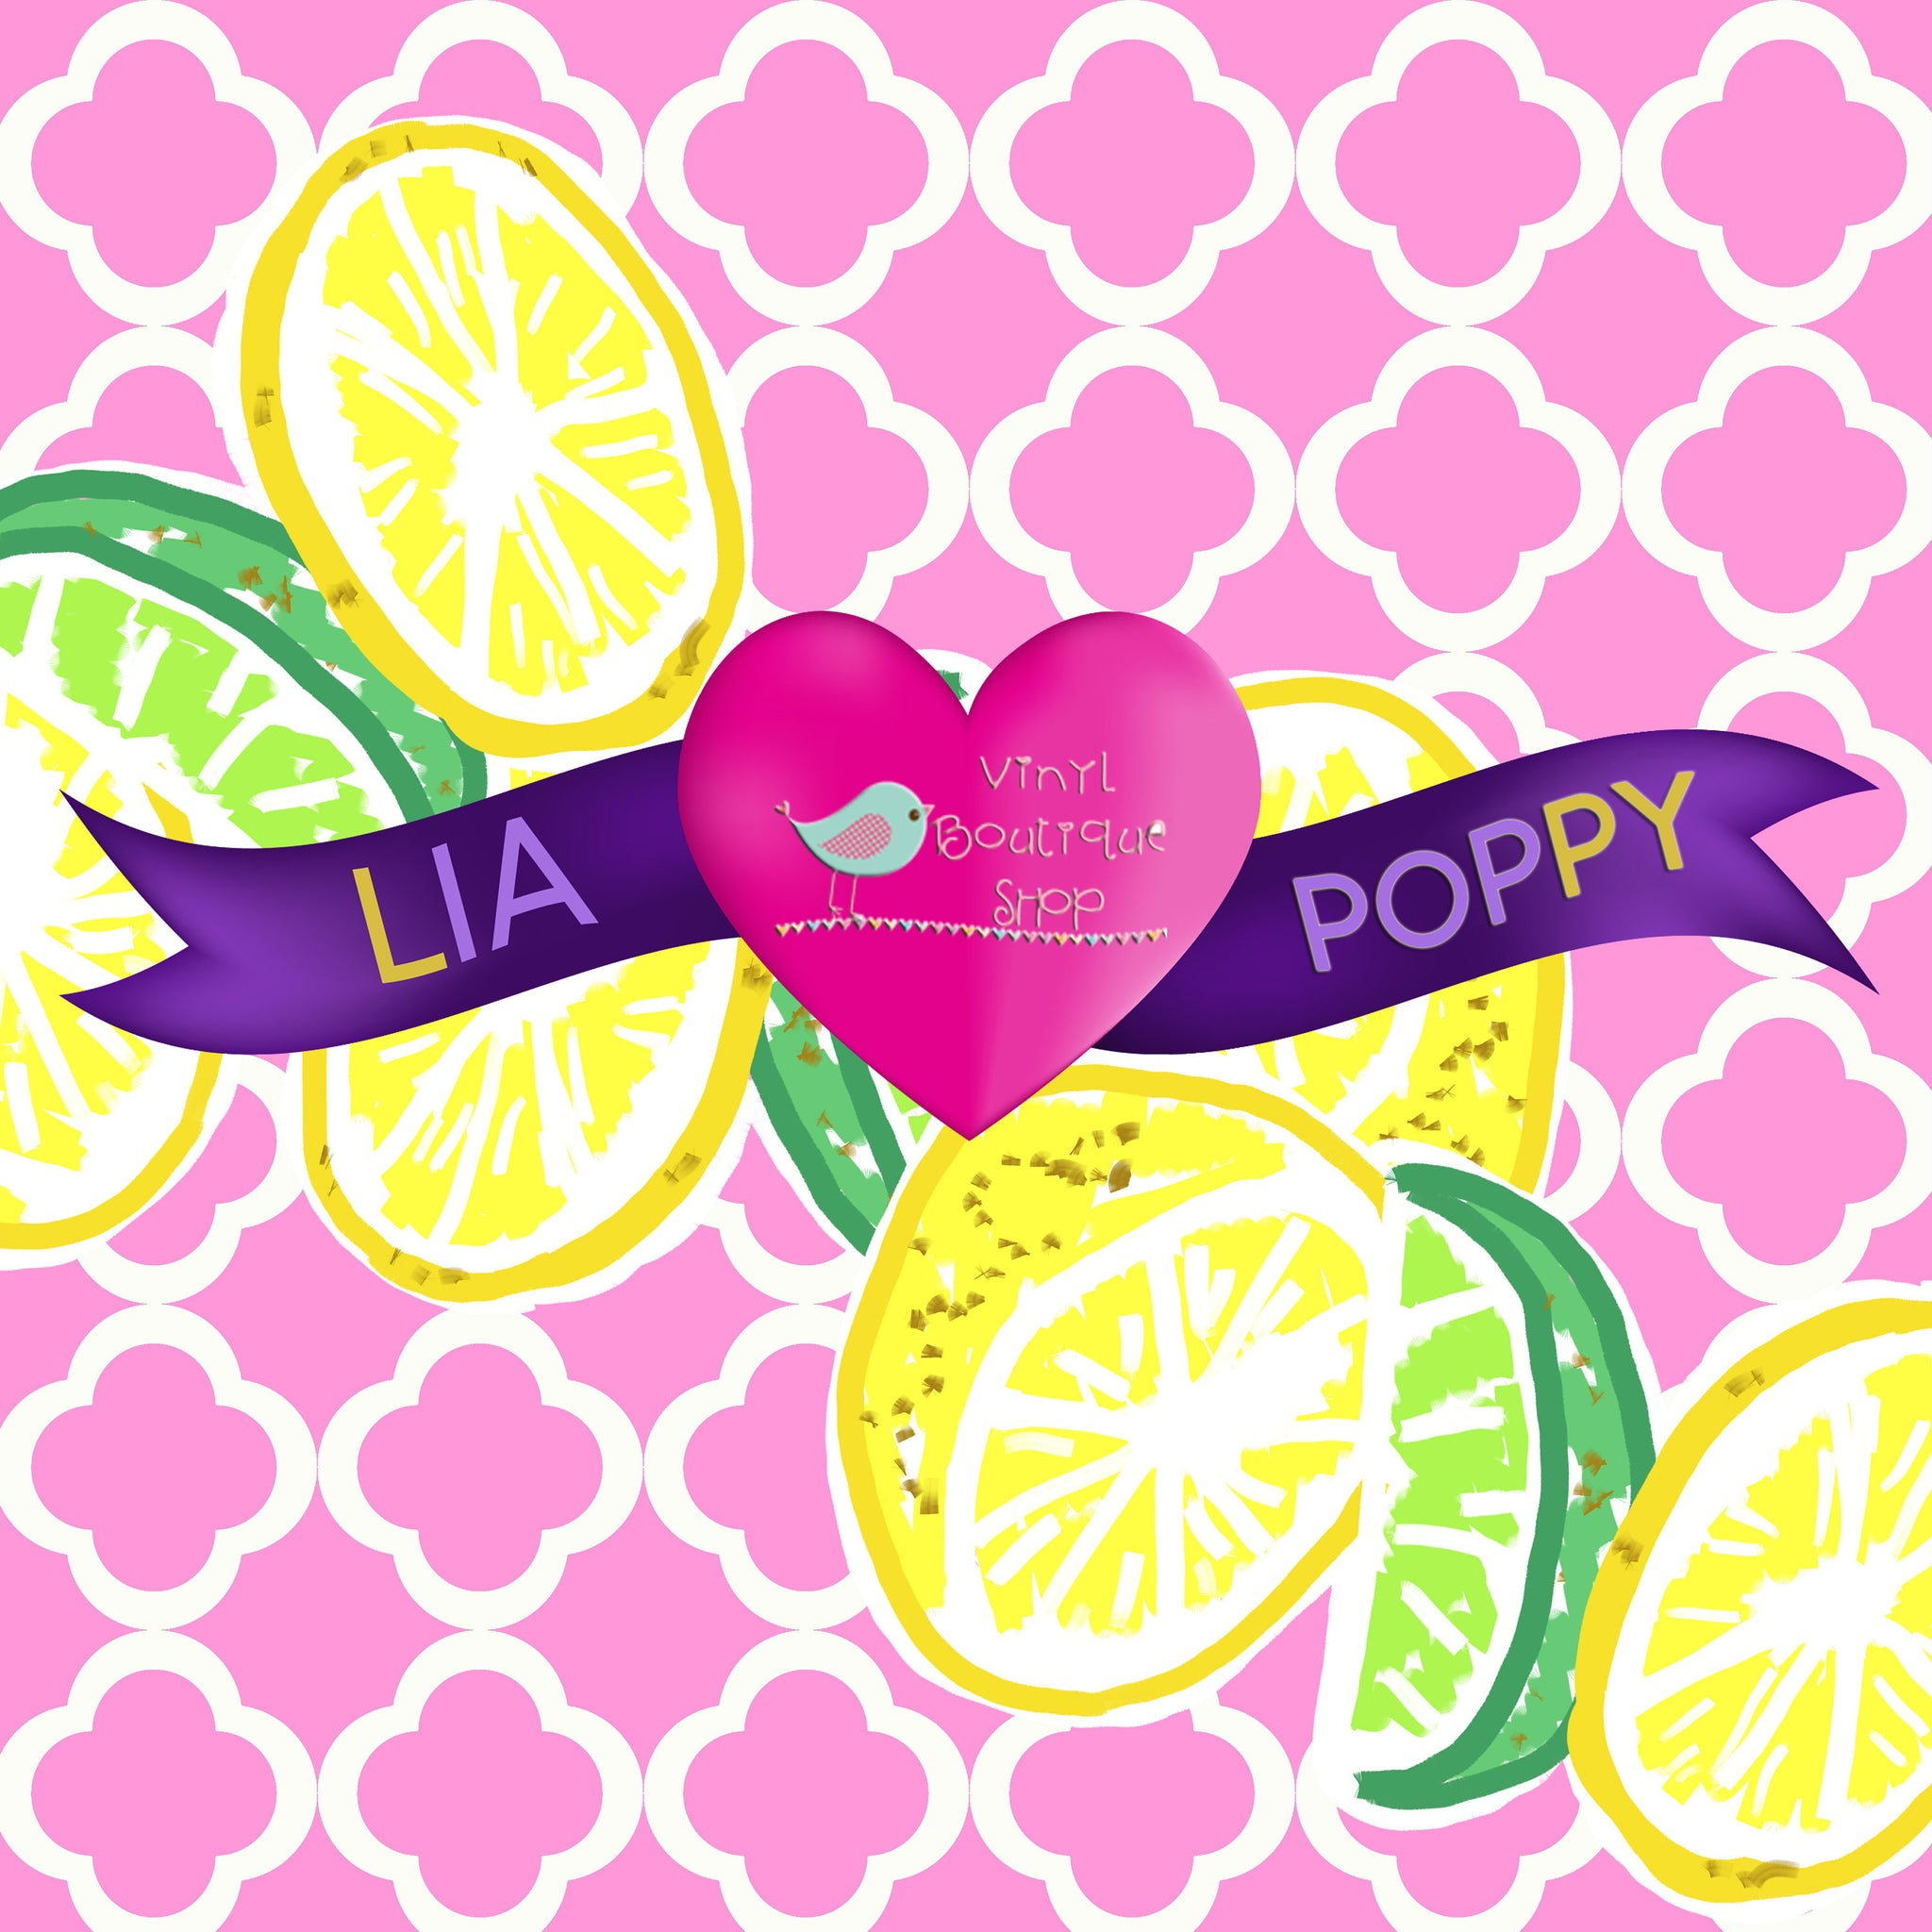 Lime Lia Poppy Vinyl Sheet LPY-113 - Vinyl Boutique Shop